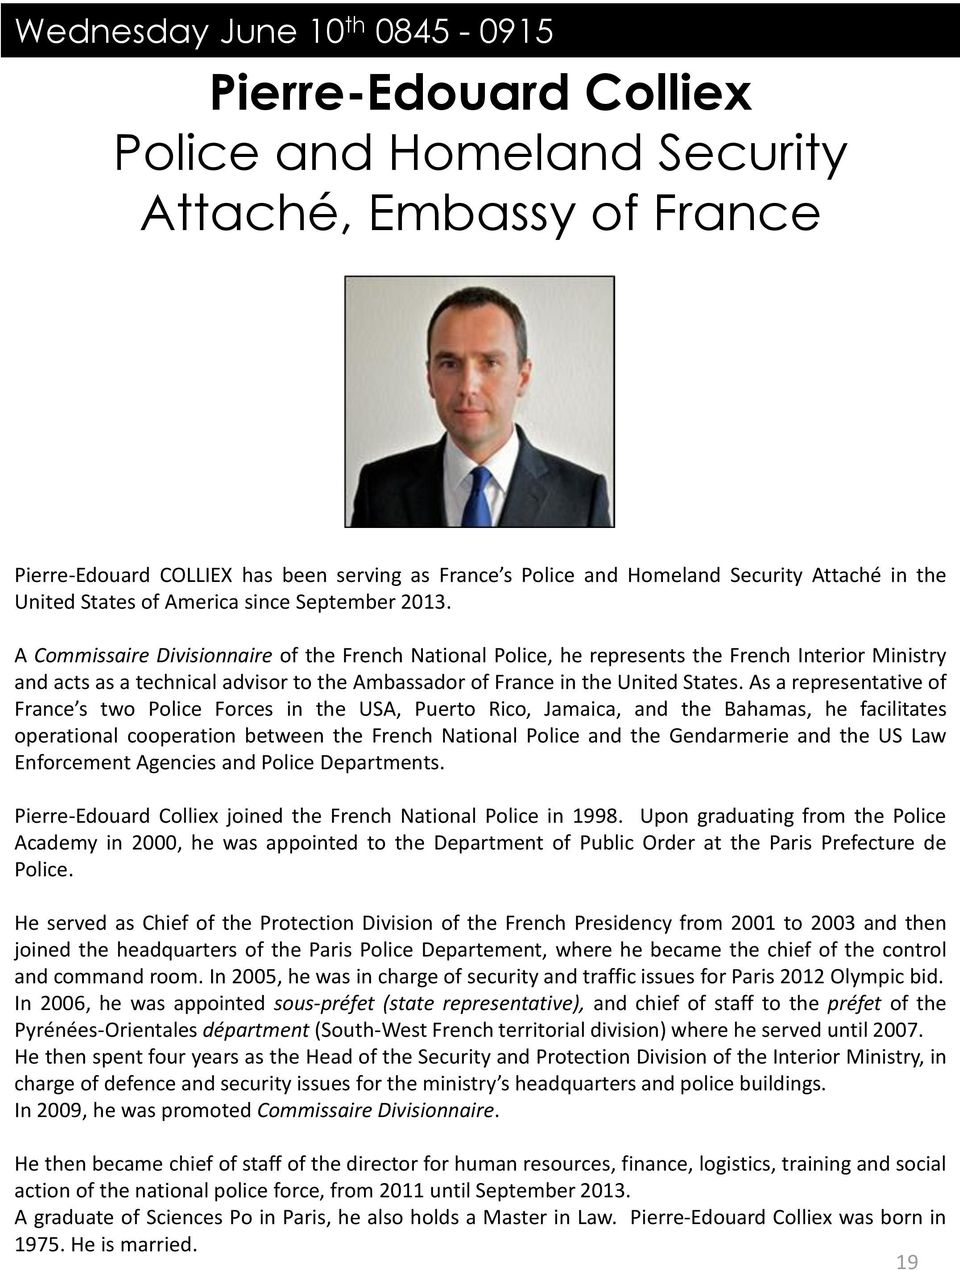 A Commissaire Divisionnaire of the French National Police, he represents the French Interior Ministry and acts as a technical advisor to the Ambassador of France in the United States.